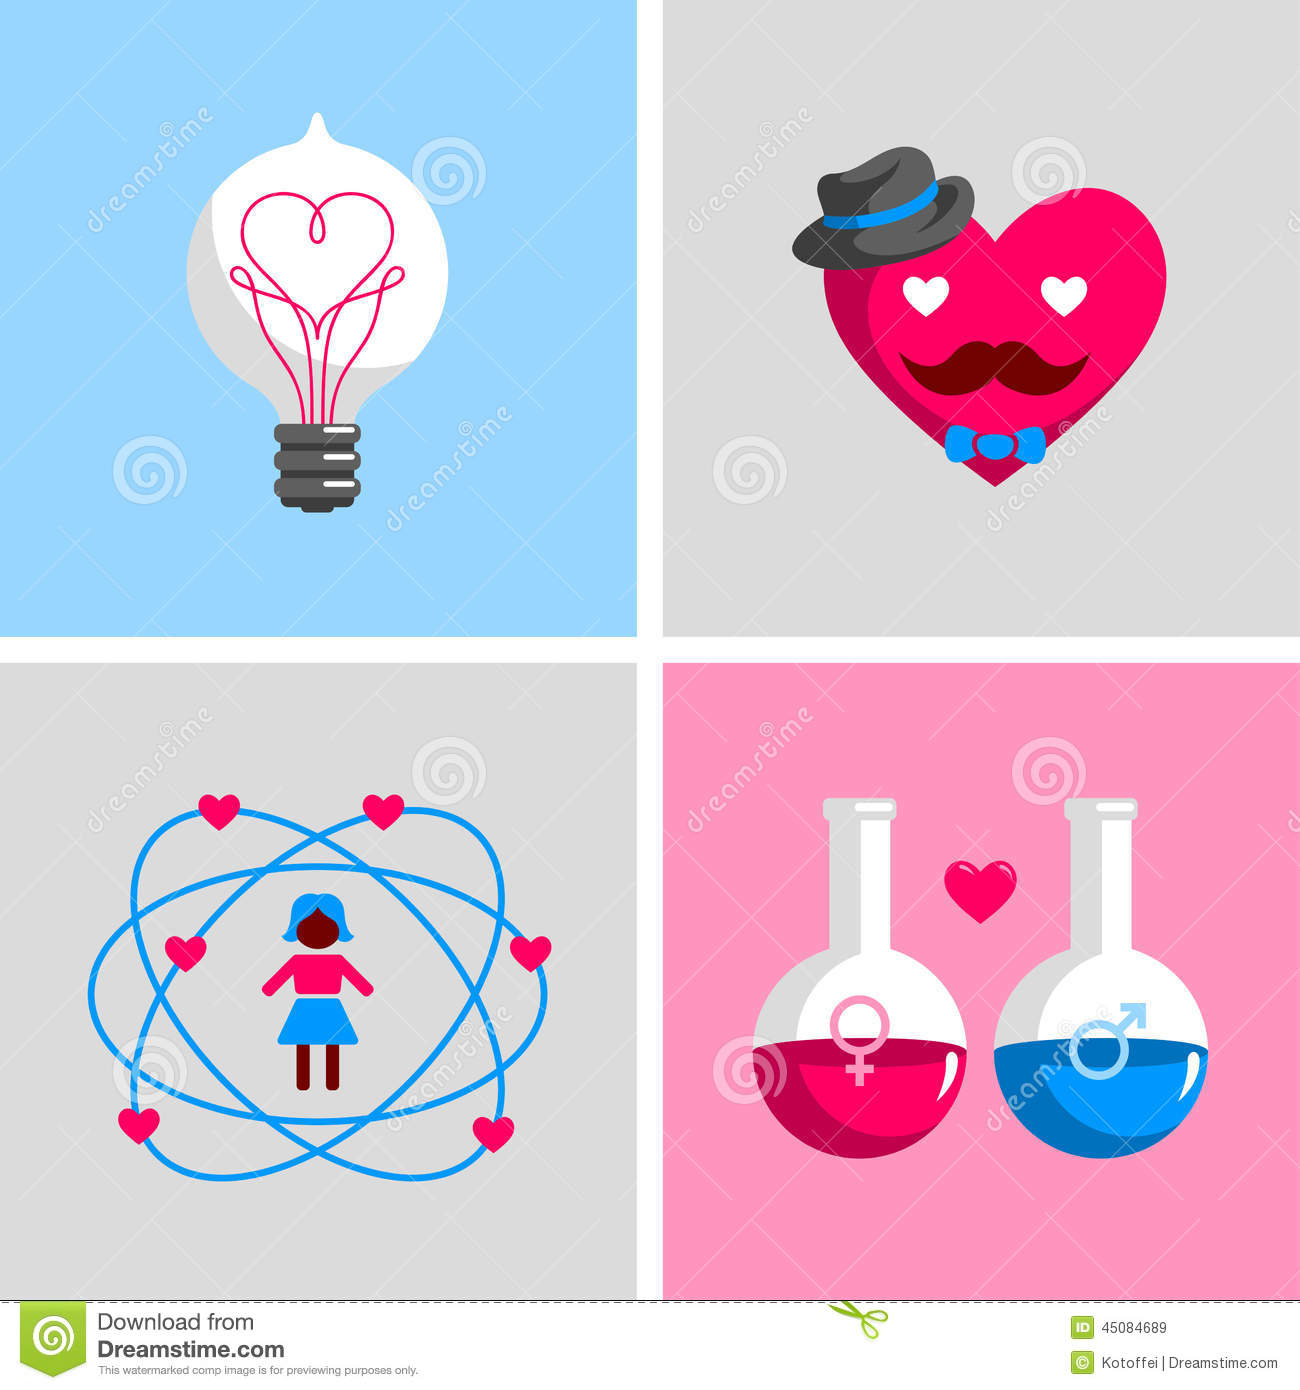 Love Signs And Symbols Stock Vector Illustration Of Creative